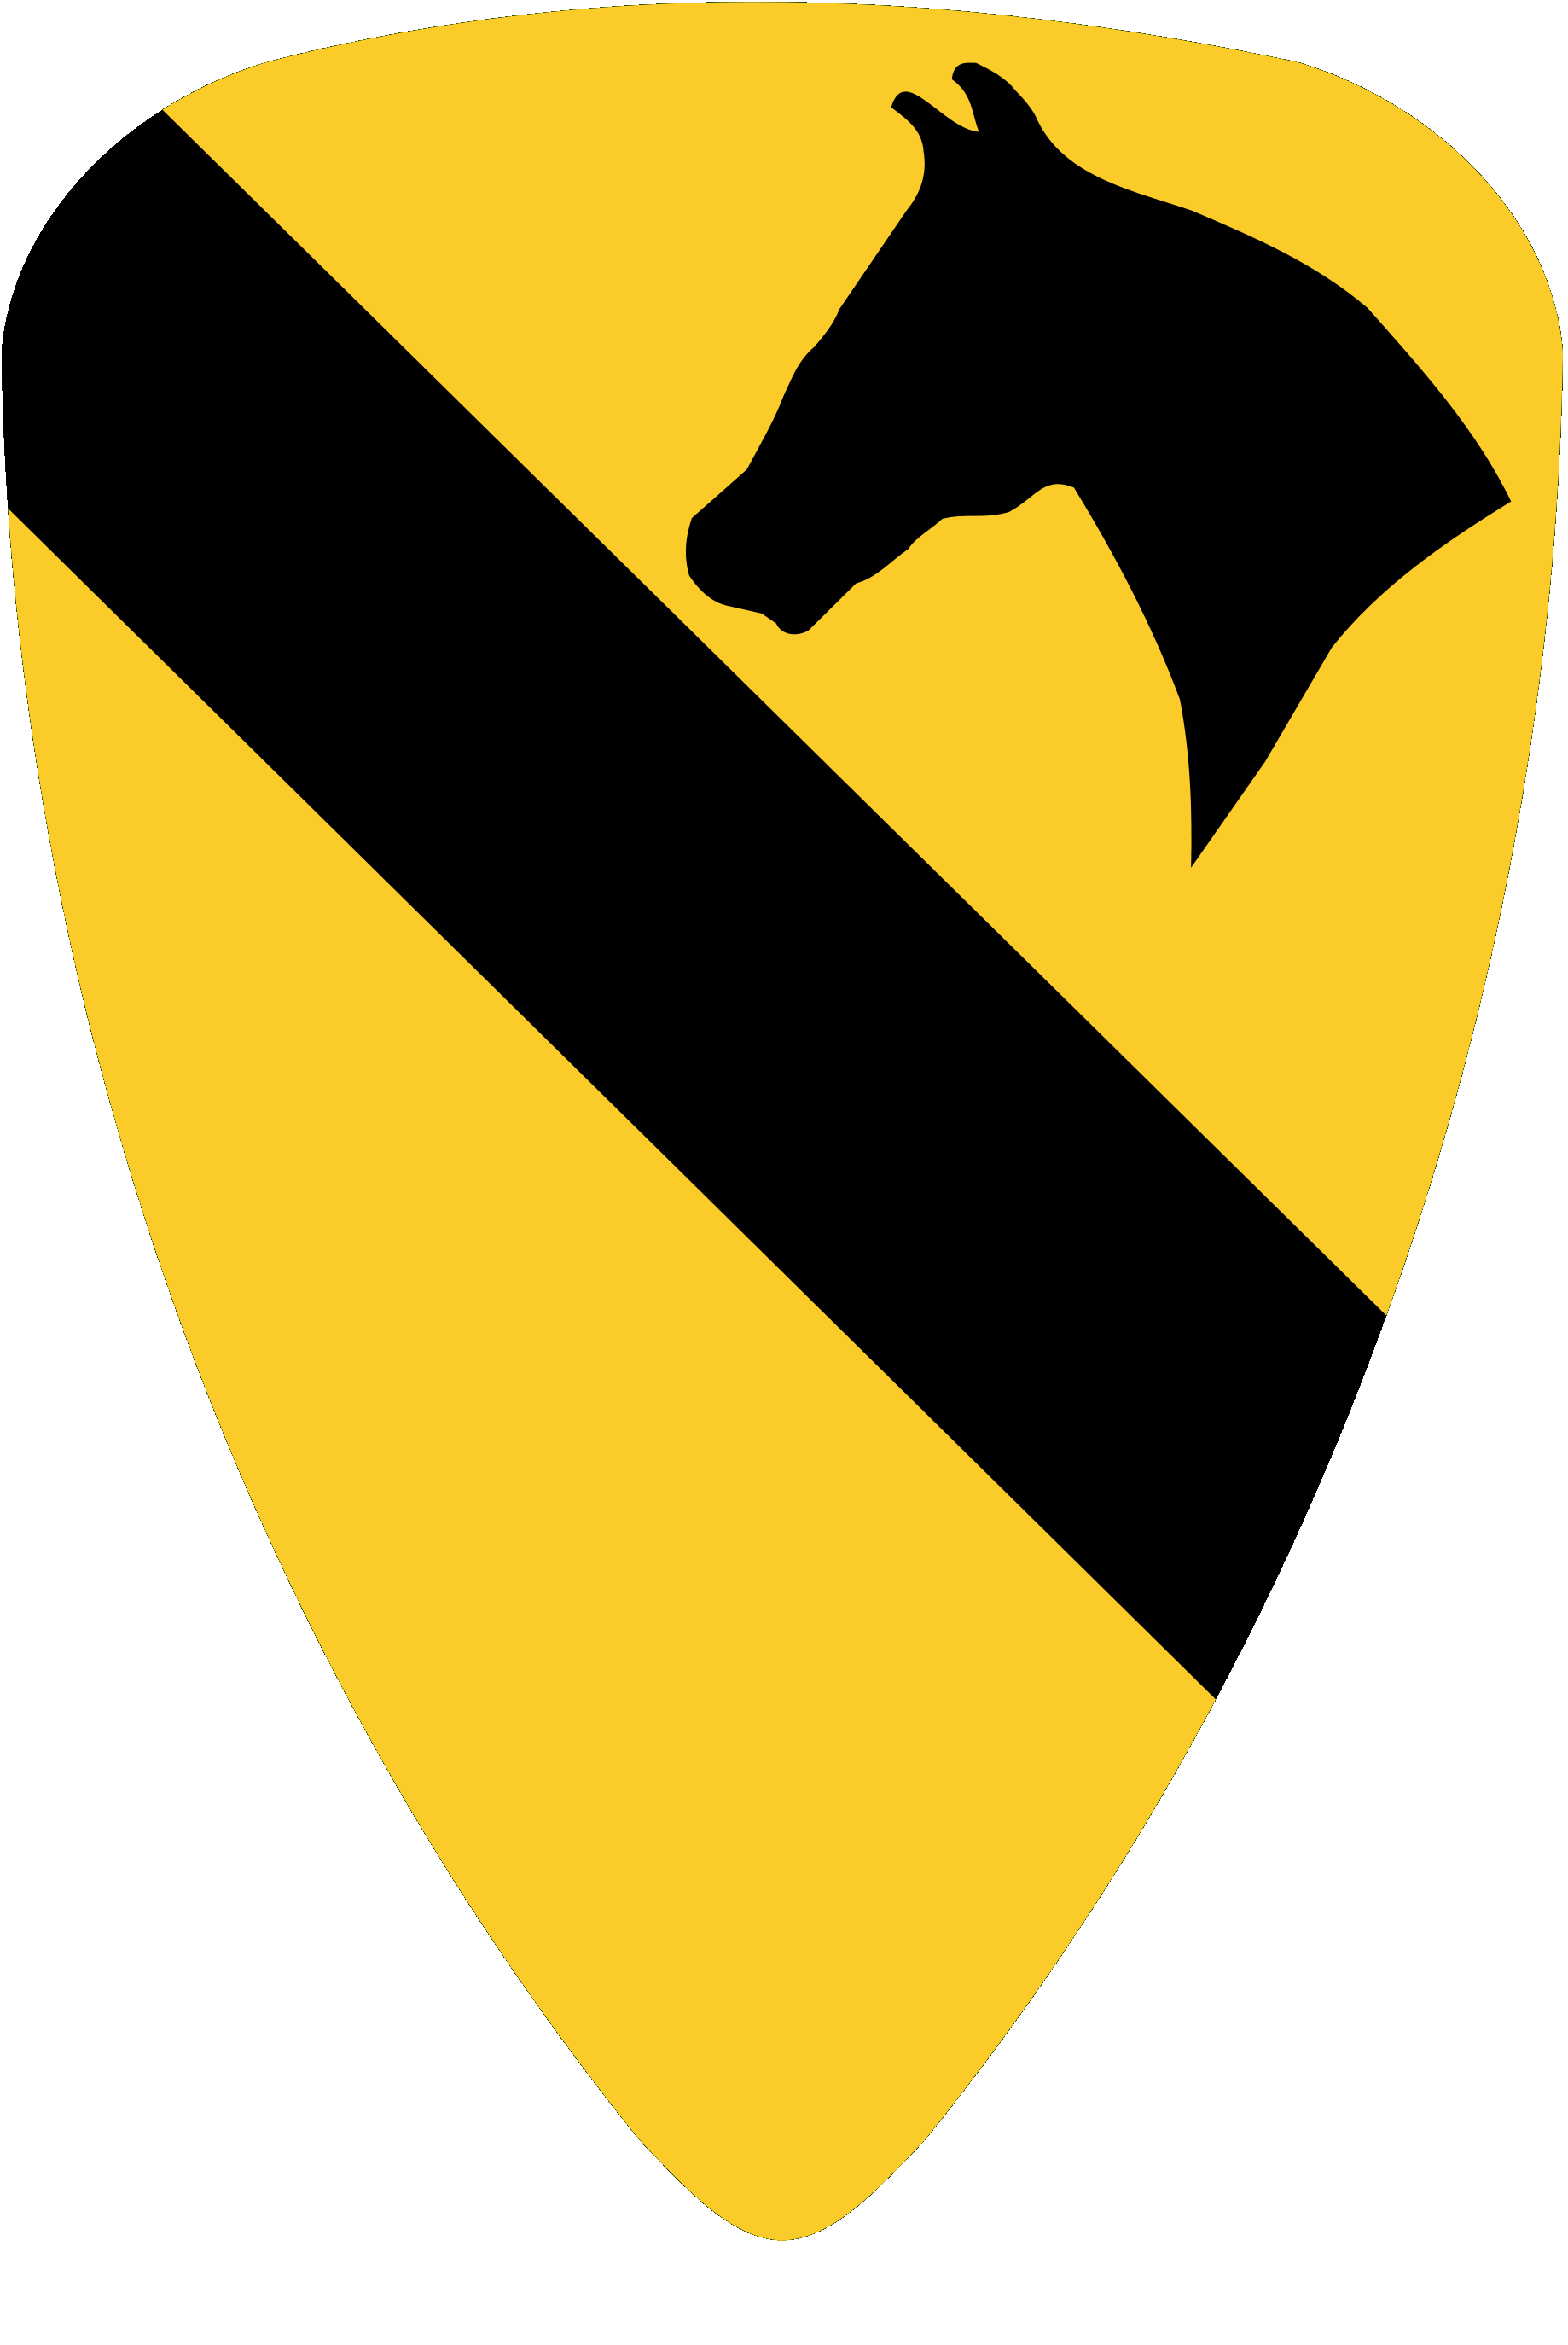 image 1st cavalry divisionpng the worlds military